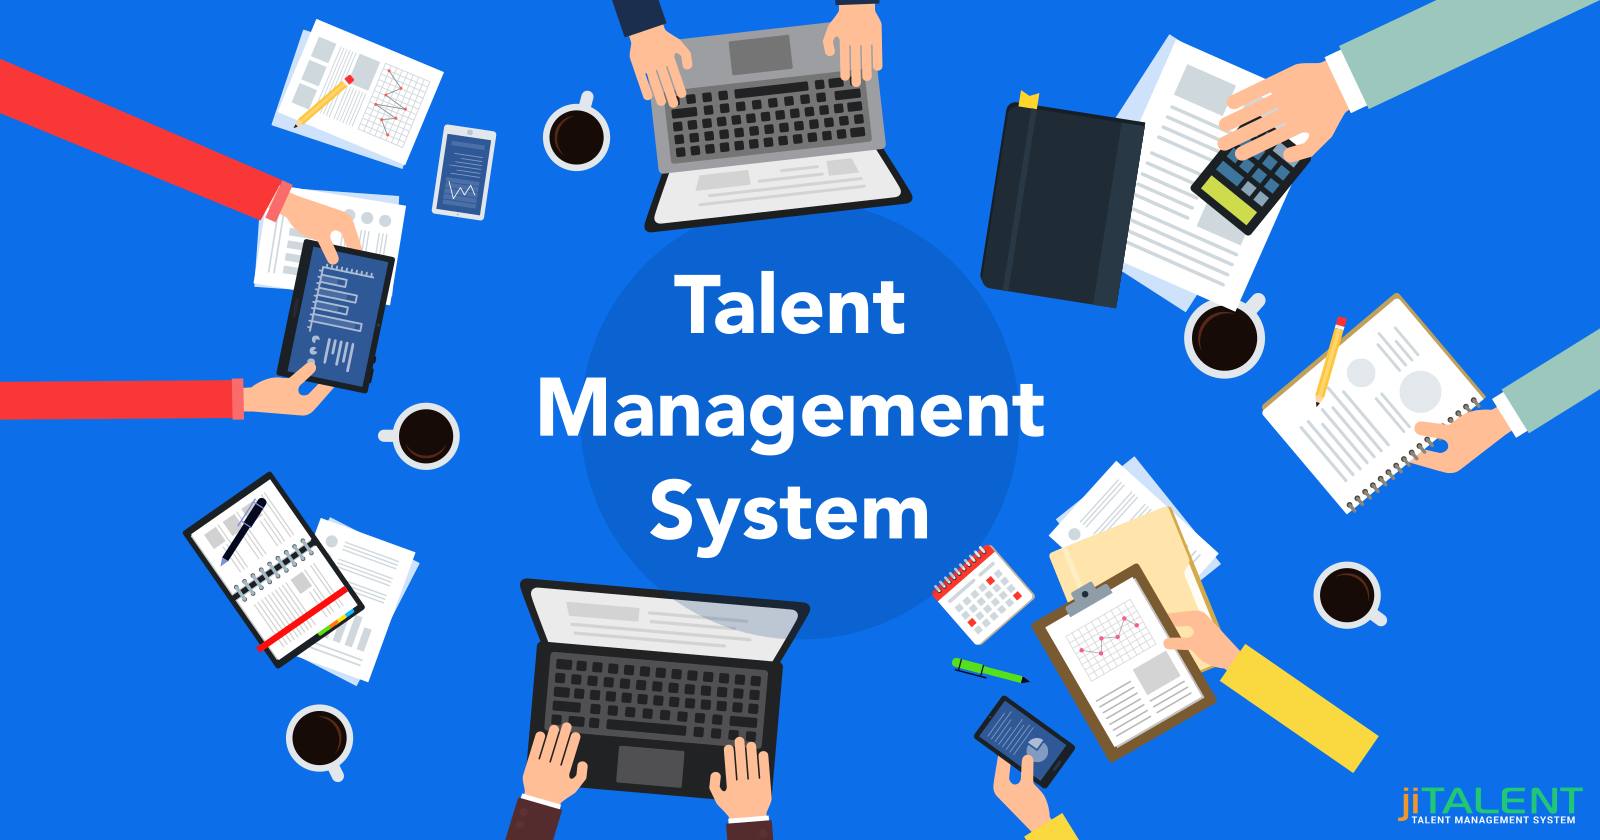 Make Your HR Team Perform Better Using a Talent Management System